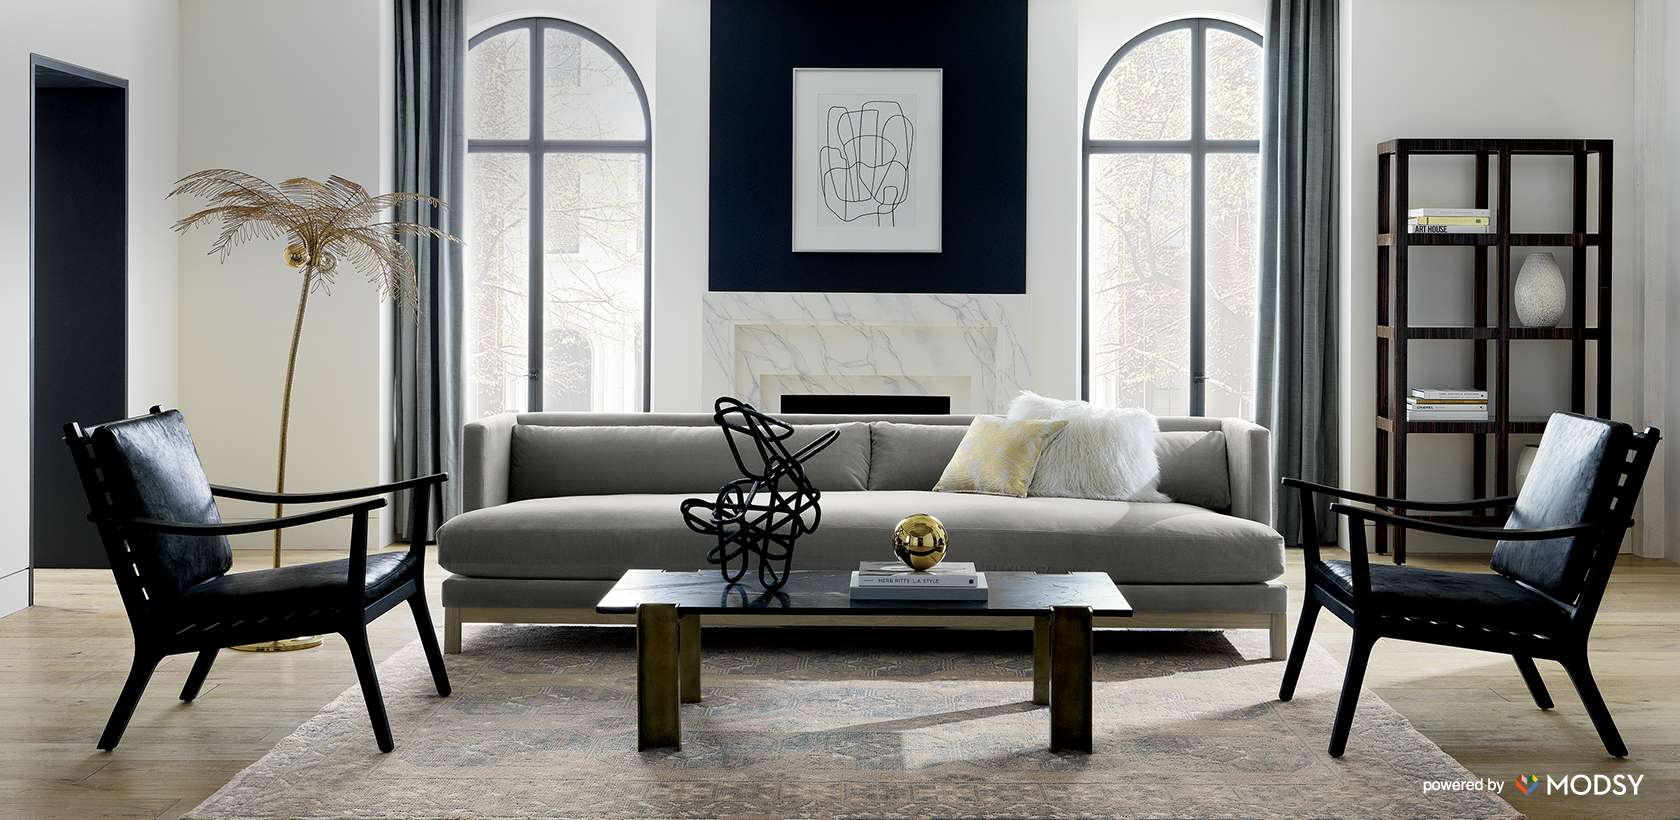 How Can You Get The Lost Shine Back on Your Furniture?